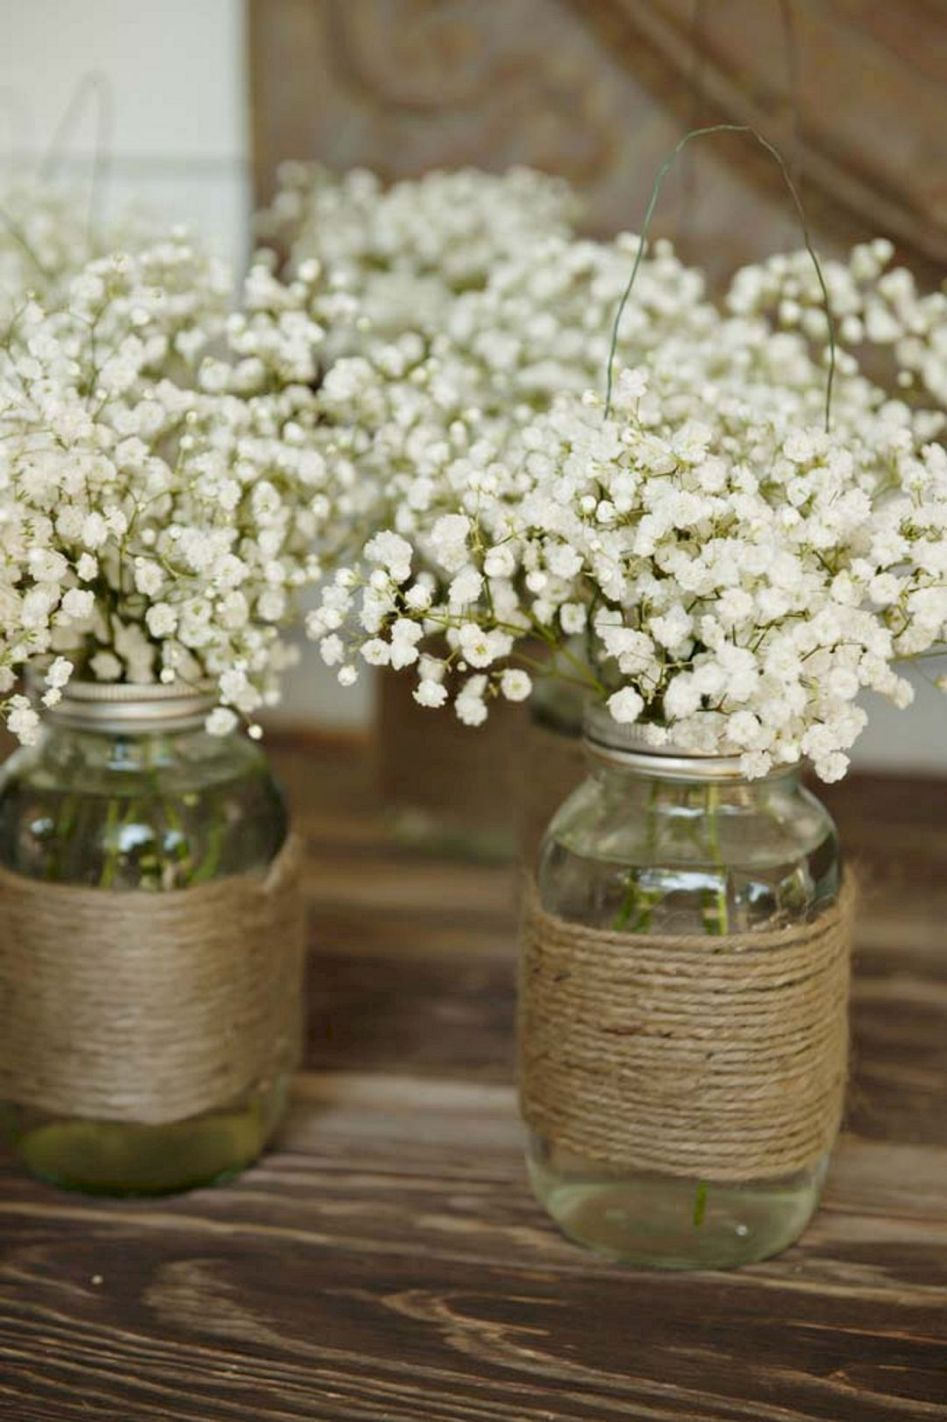 199 diy creative rustic chic wedding centerpieces ideas